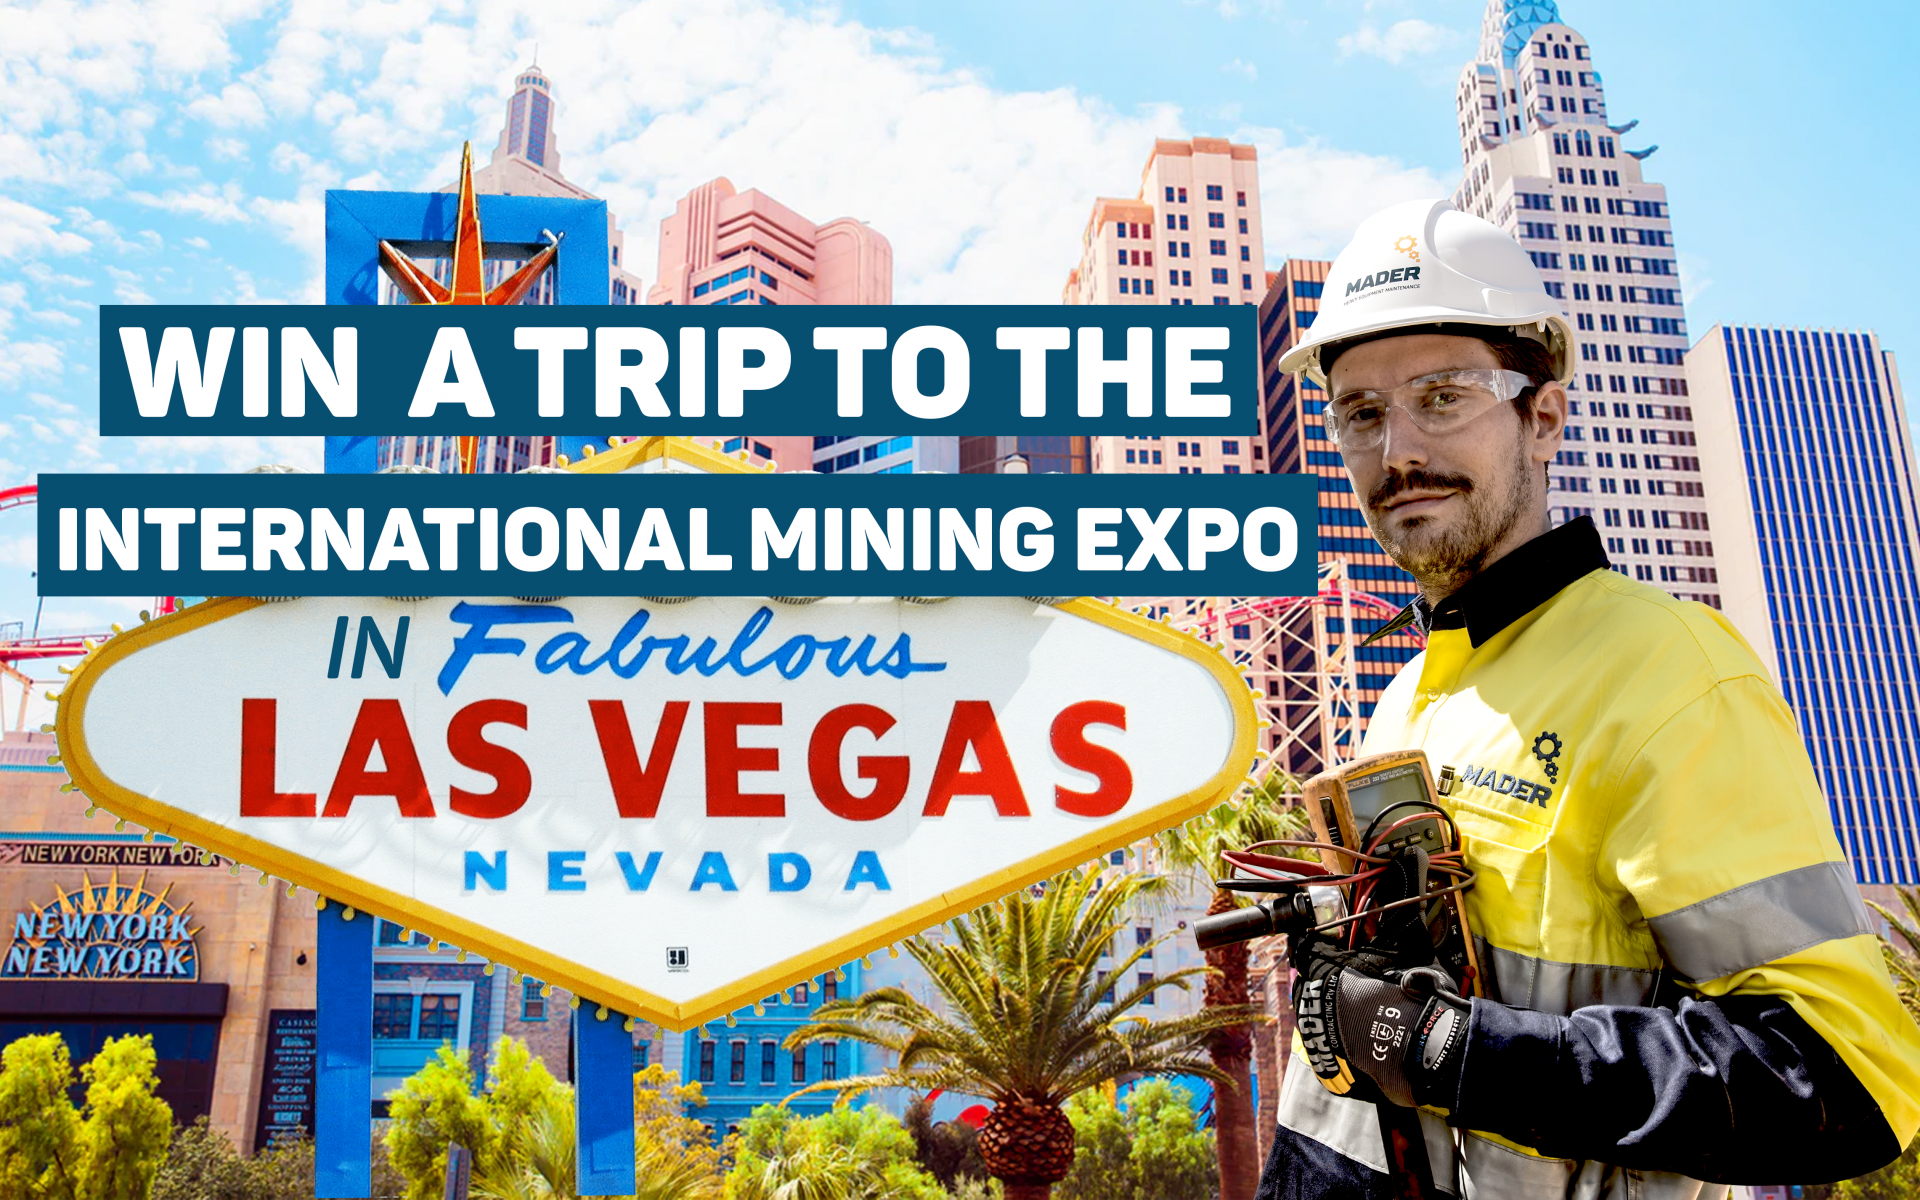 Win a trip to the International Mining Expo in Las Vegas image